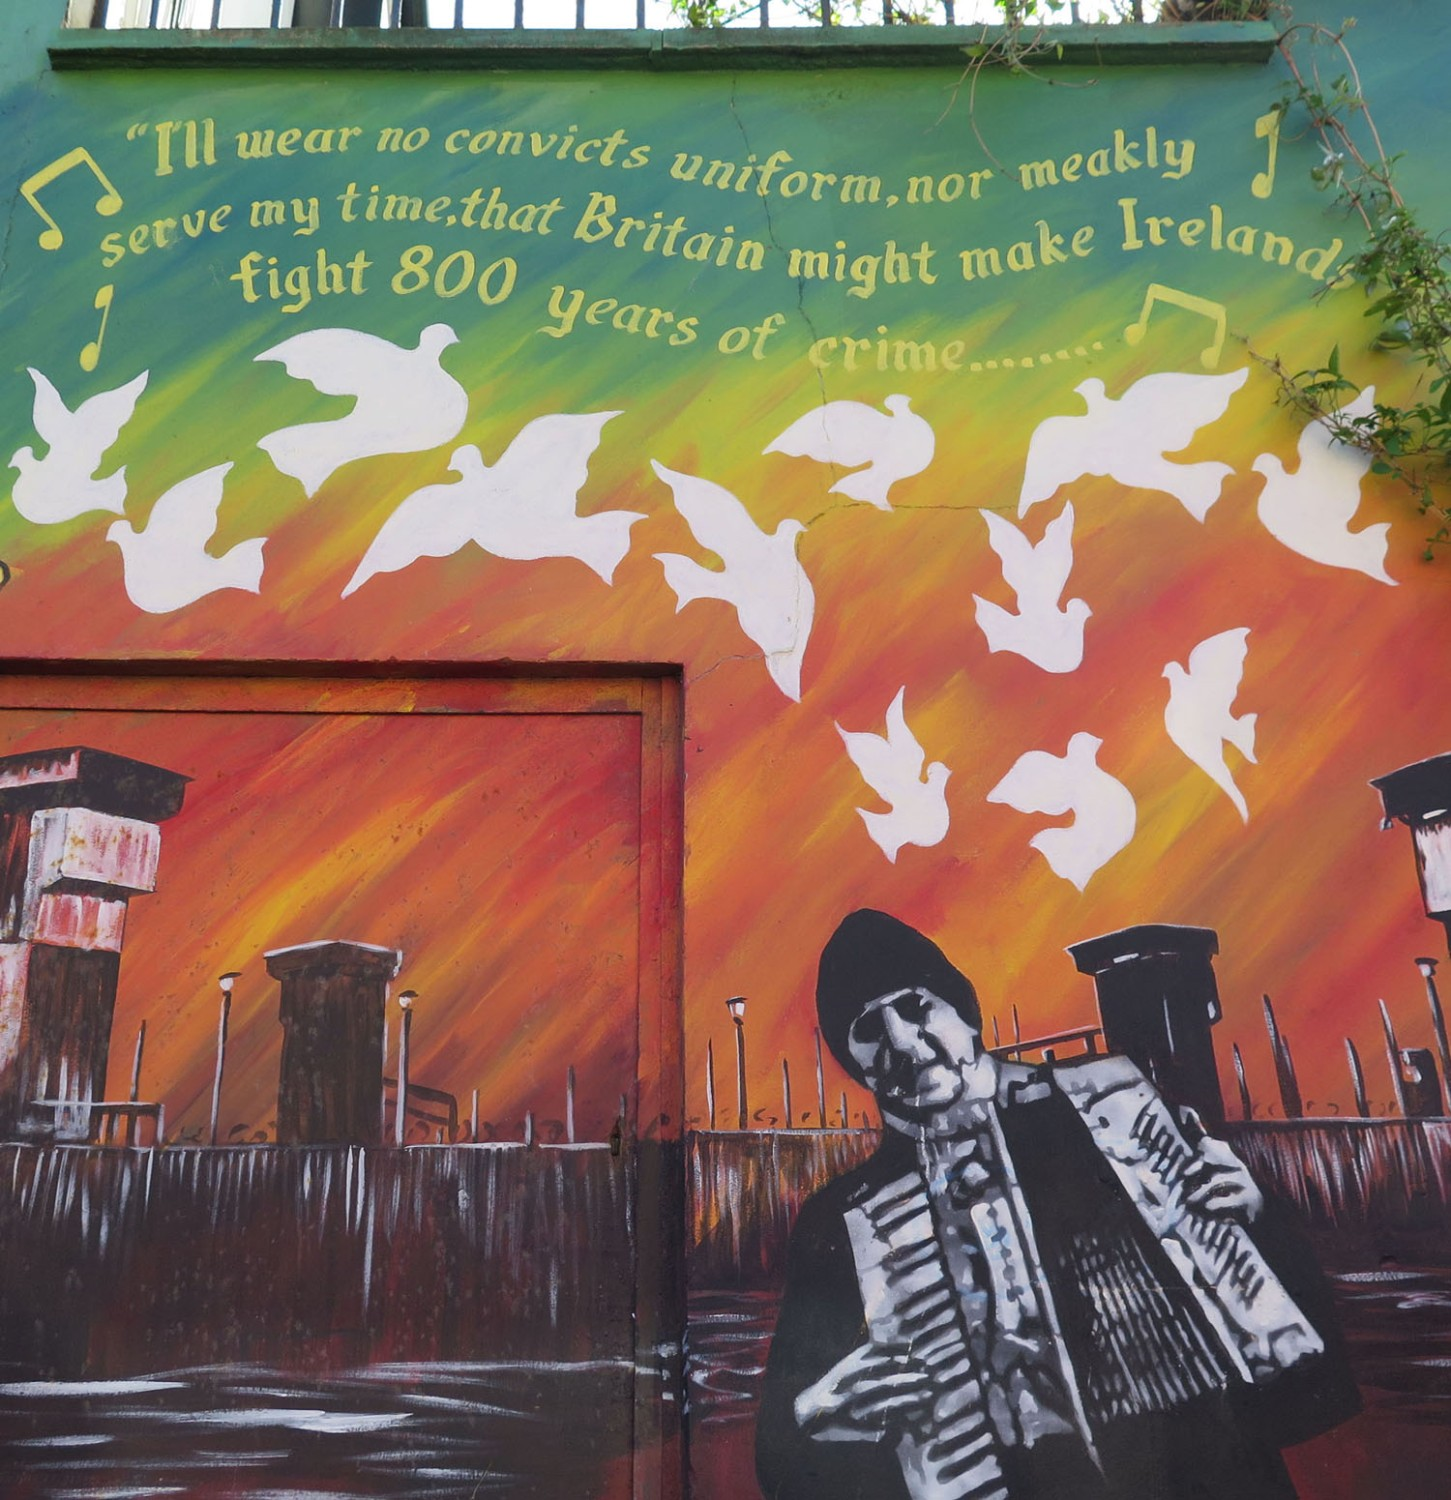 Northern-Ireland-Belfast-The-Troubles-Republican-Solidarity-Mural